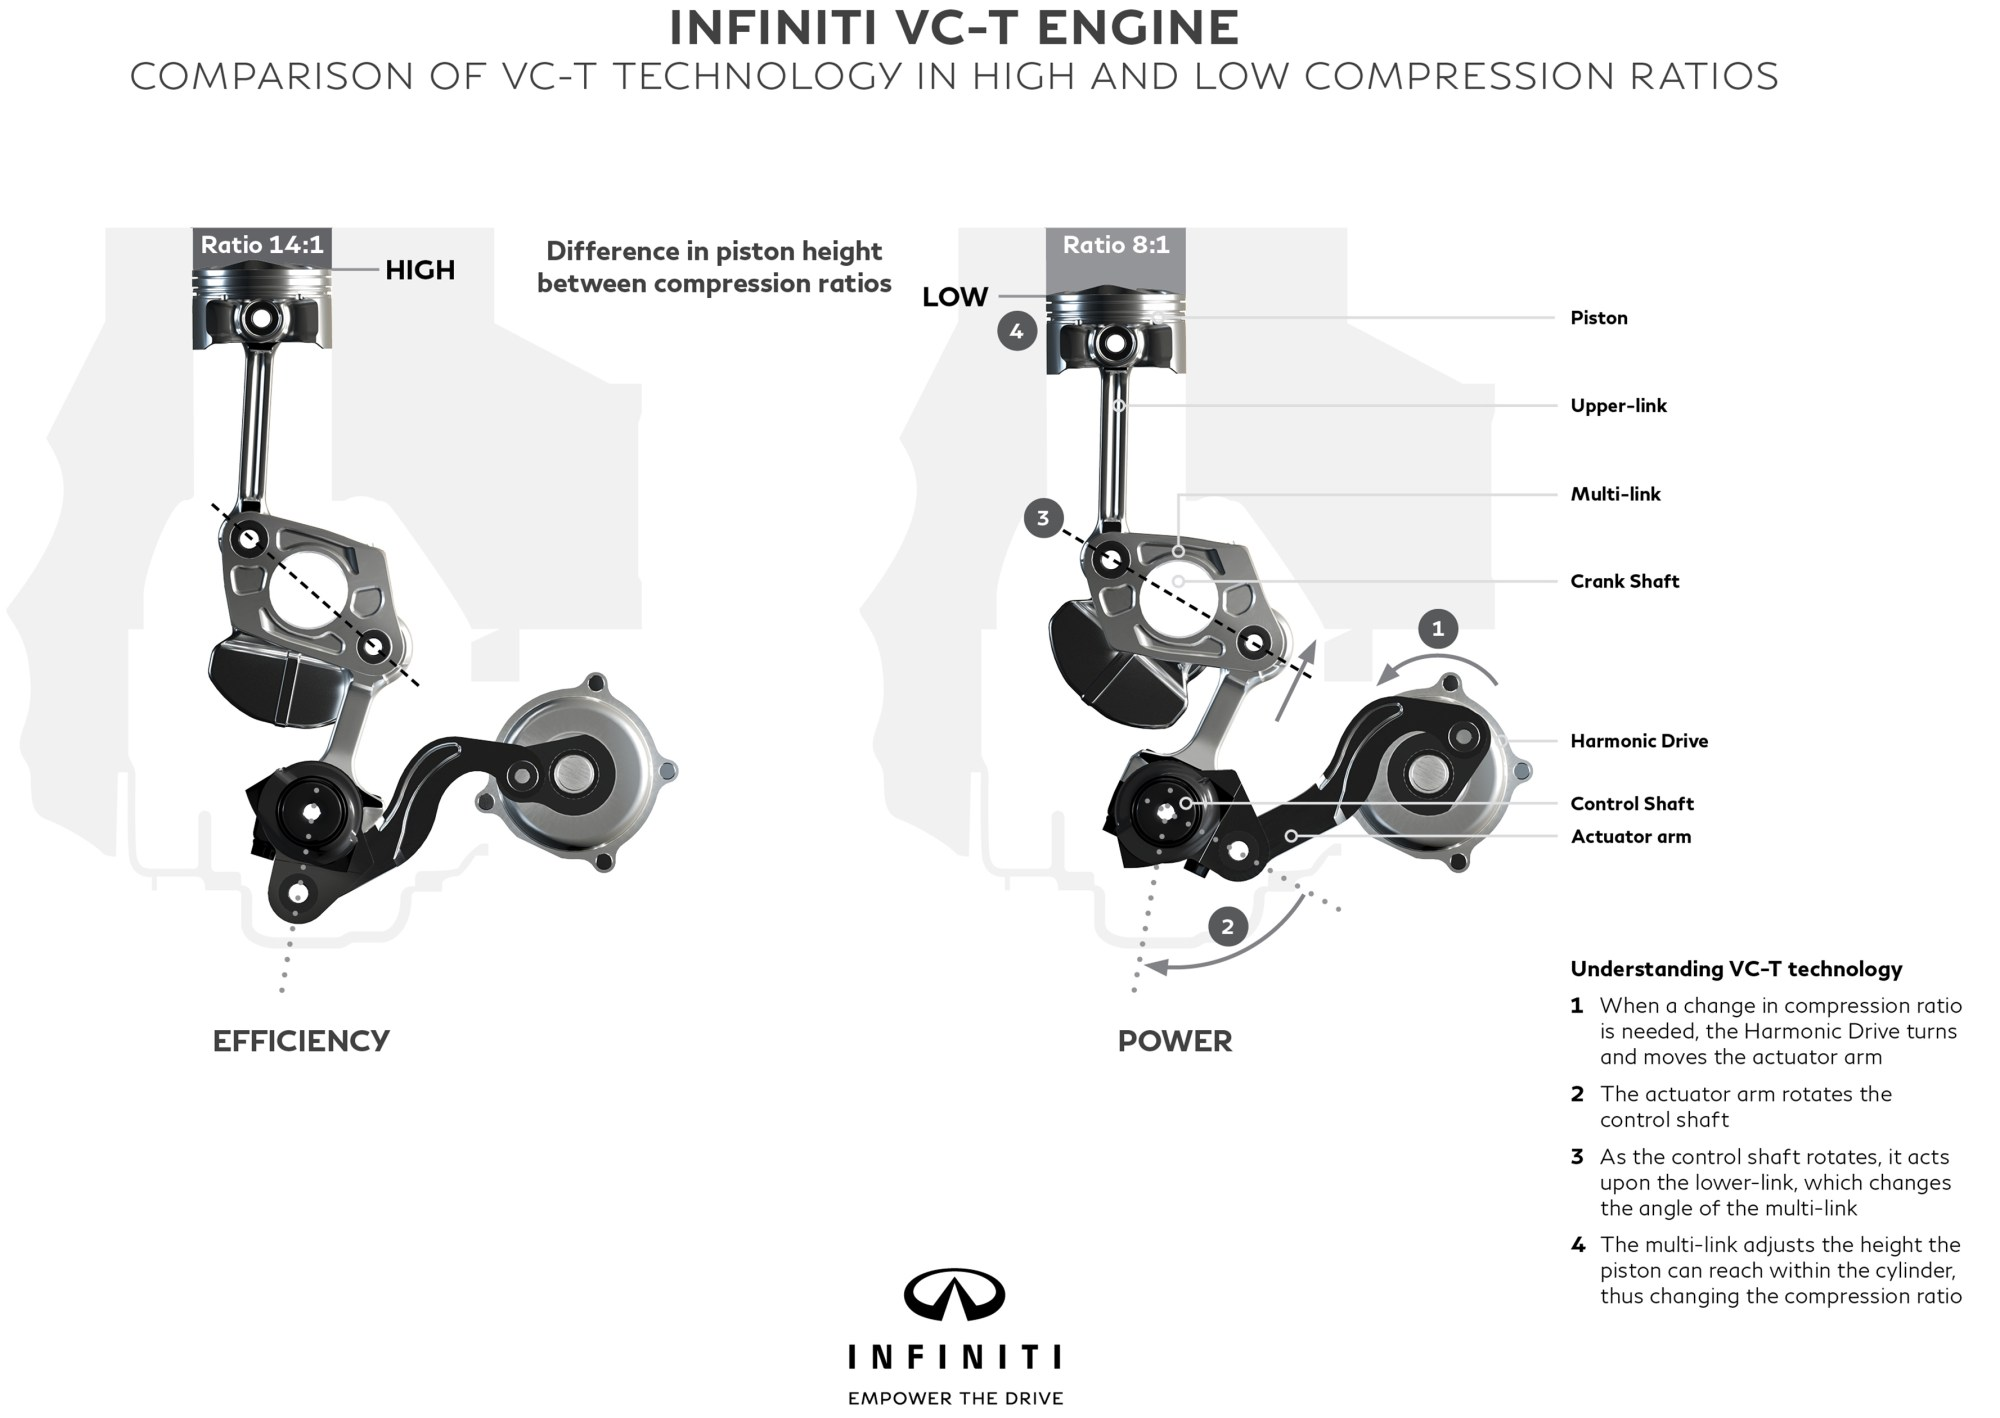 hight resolution of infiniti reveals new 2 0 litre vc t engine world s first production ready variable compression ratio unit paul tan image 534881